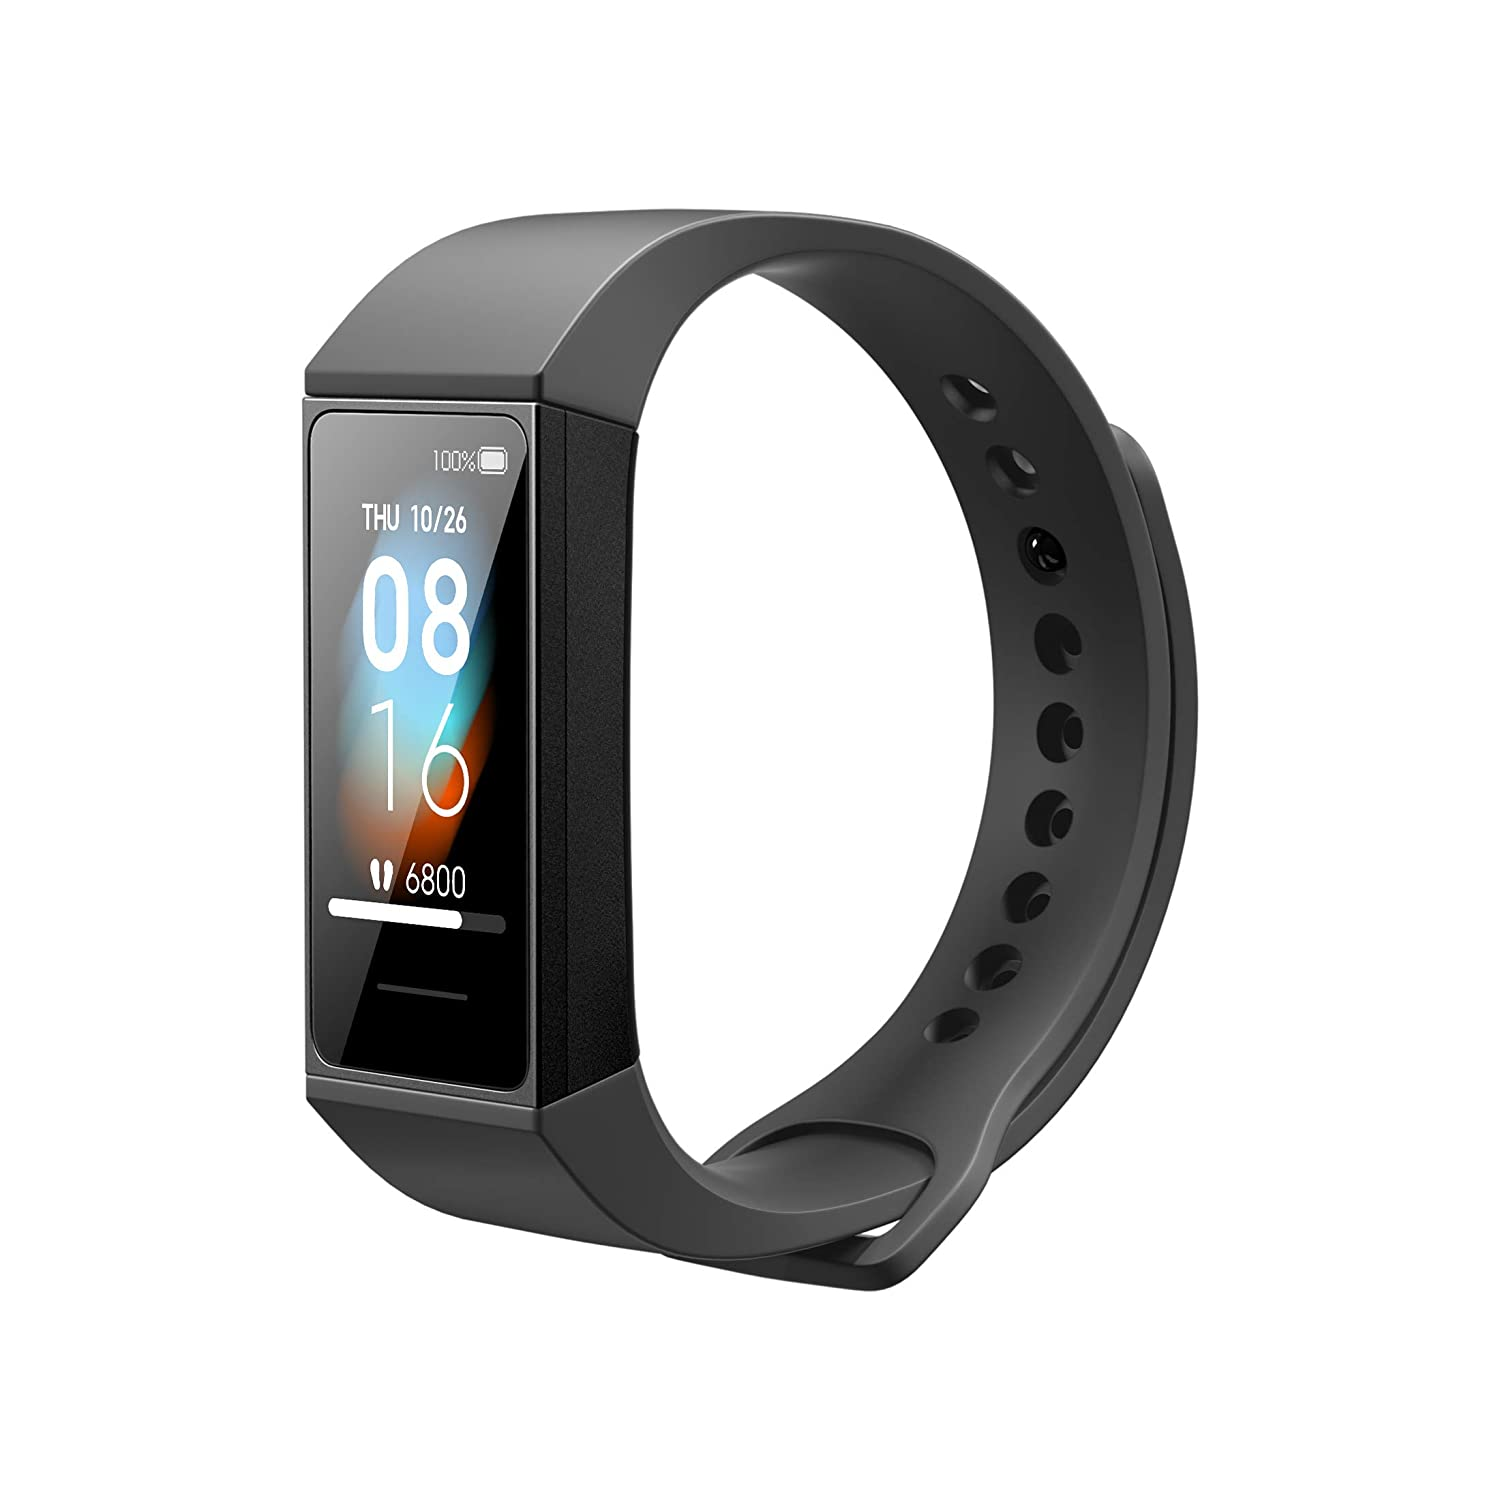 Redmi Smart Band - Black (Direct USB Charging, 5ATM Water Resistant, Full Touch Color Display, App Notifications, Music Control)